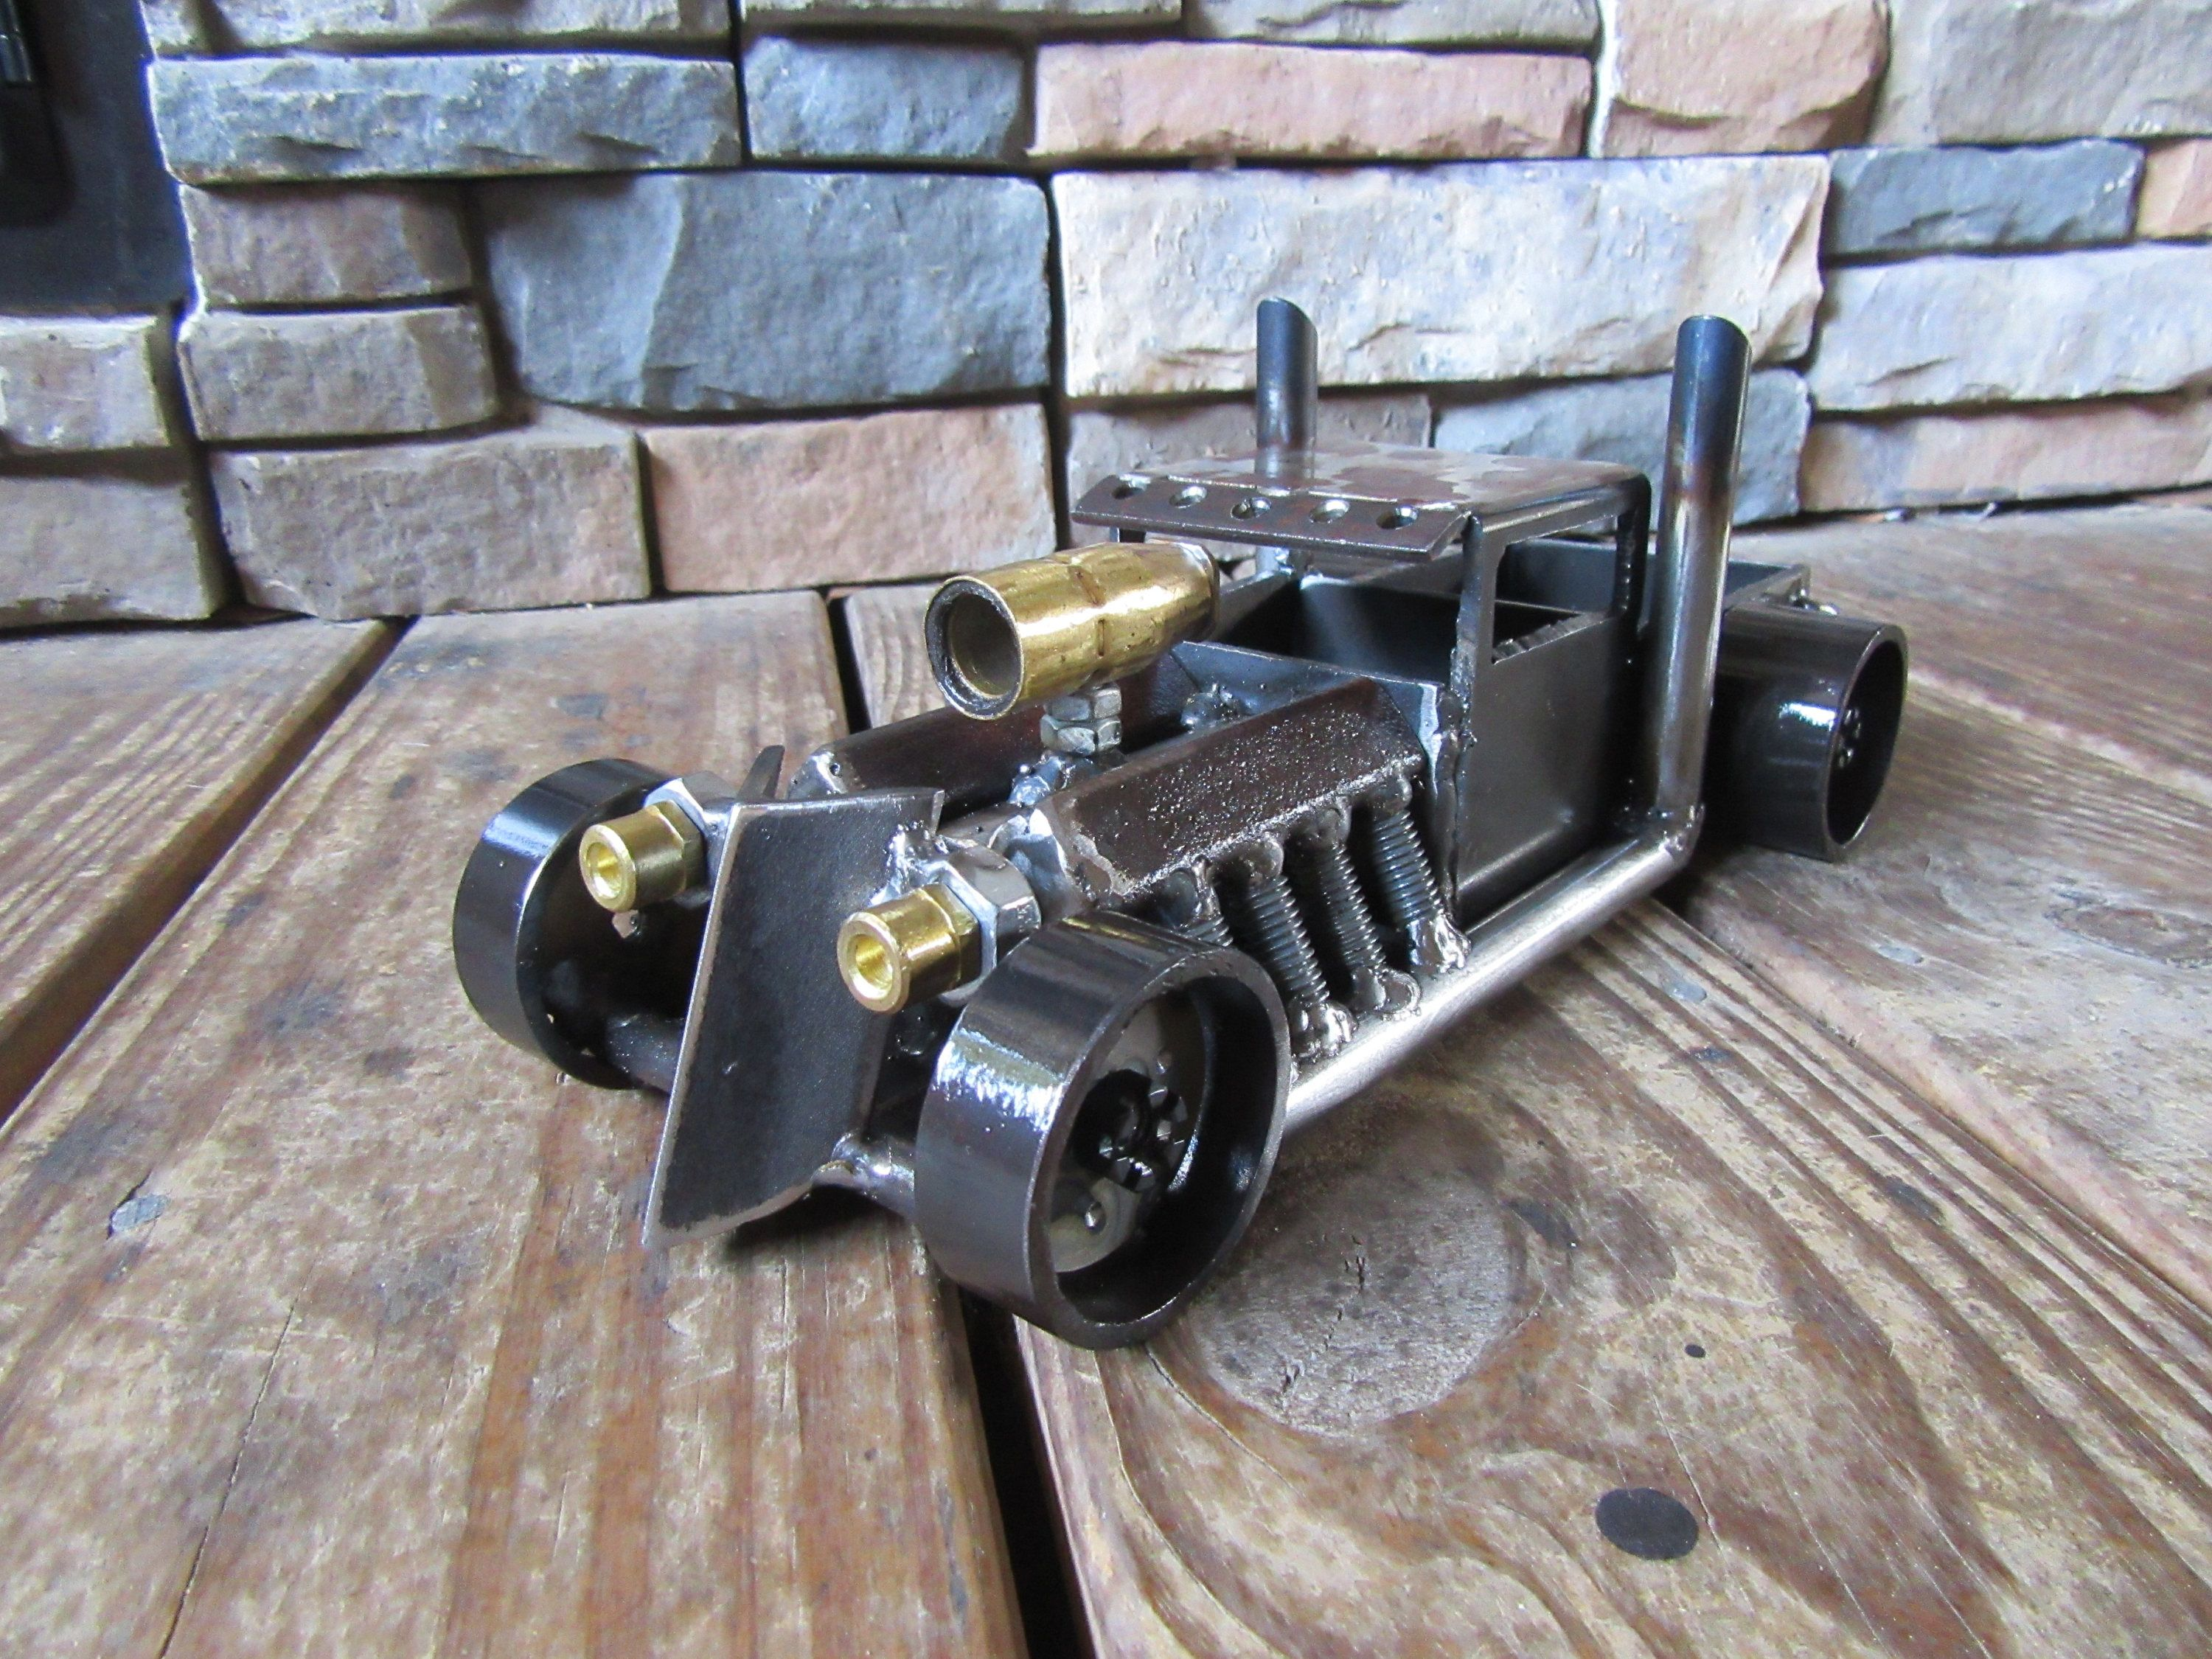 Hot Rod Rat Rod Steel Truck-Handmade Metal Cars-Welded Art-Mancave ...